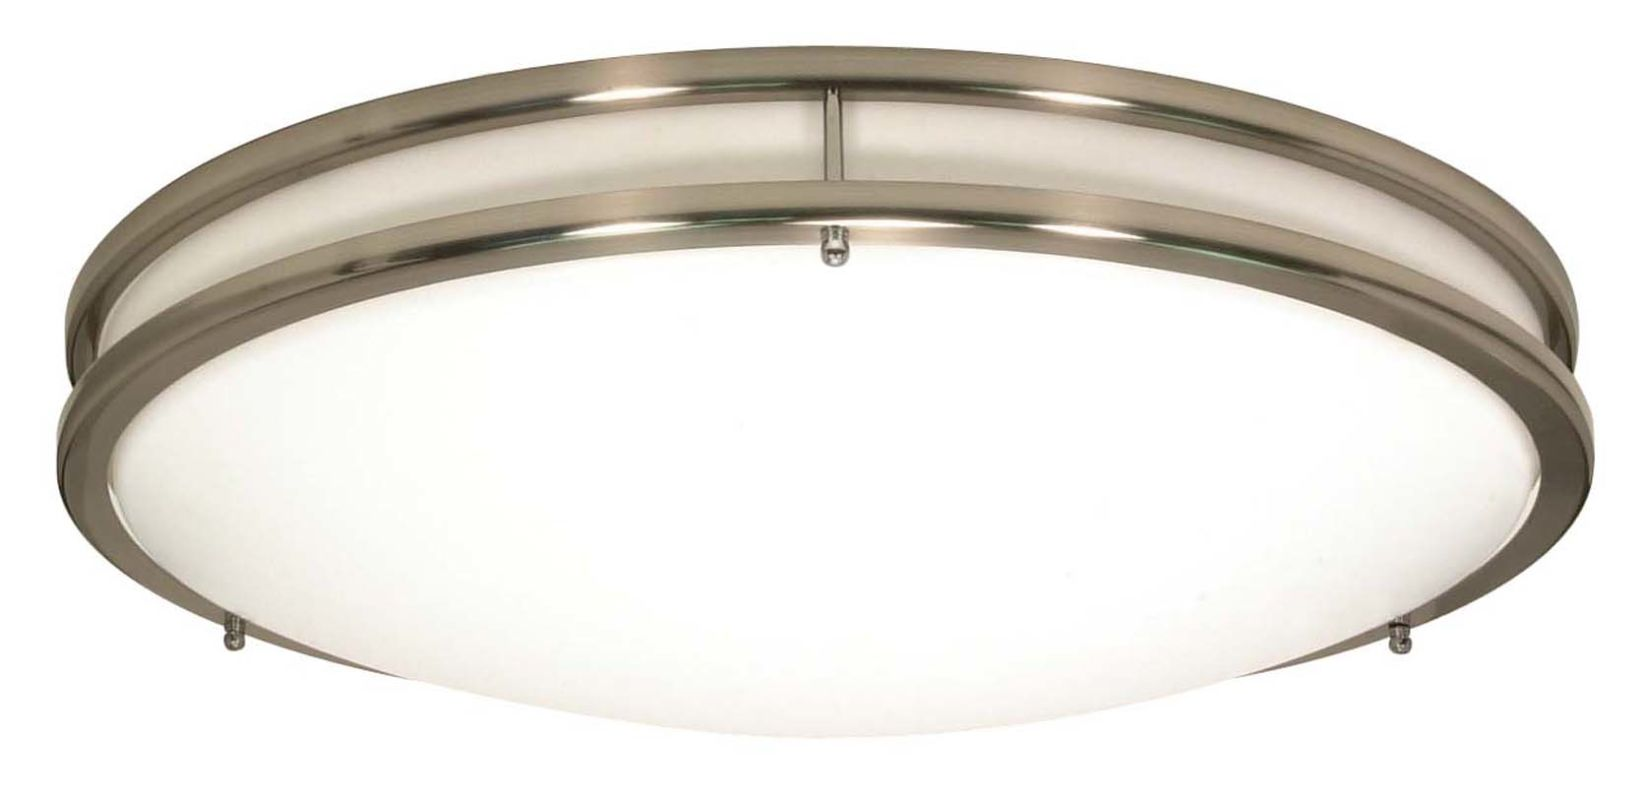 Nuvo Lighting 60 900 Brushed Nickel Glamour 3 Light Flush Mount Energy Star Rated Indoor Ceiling